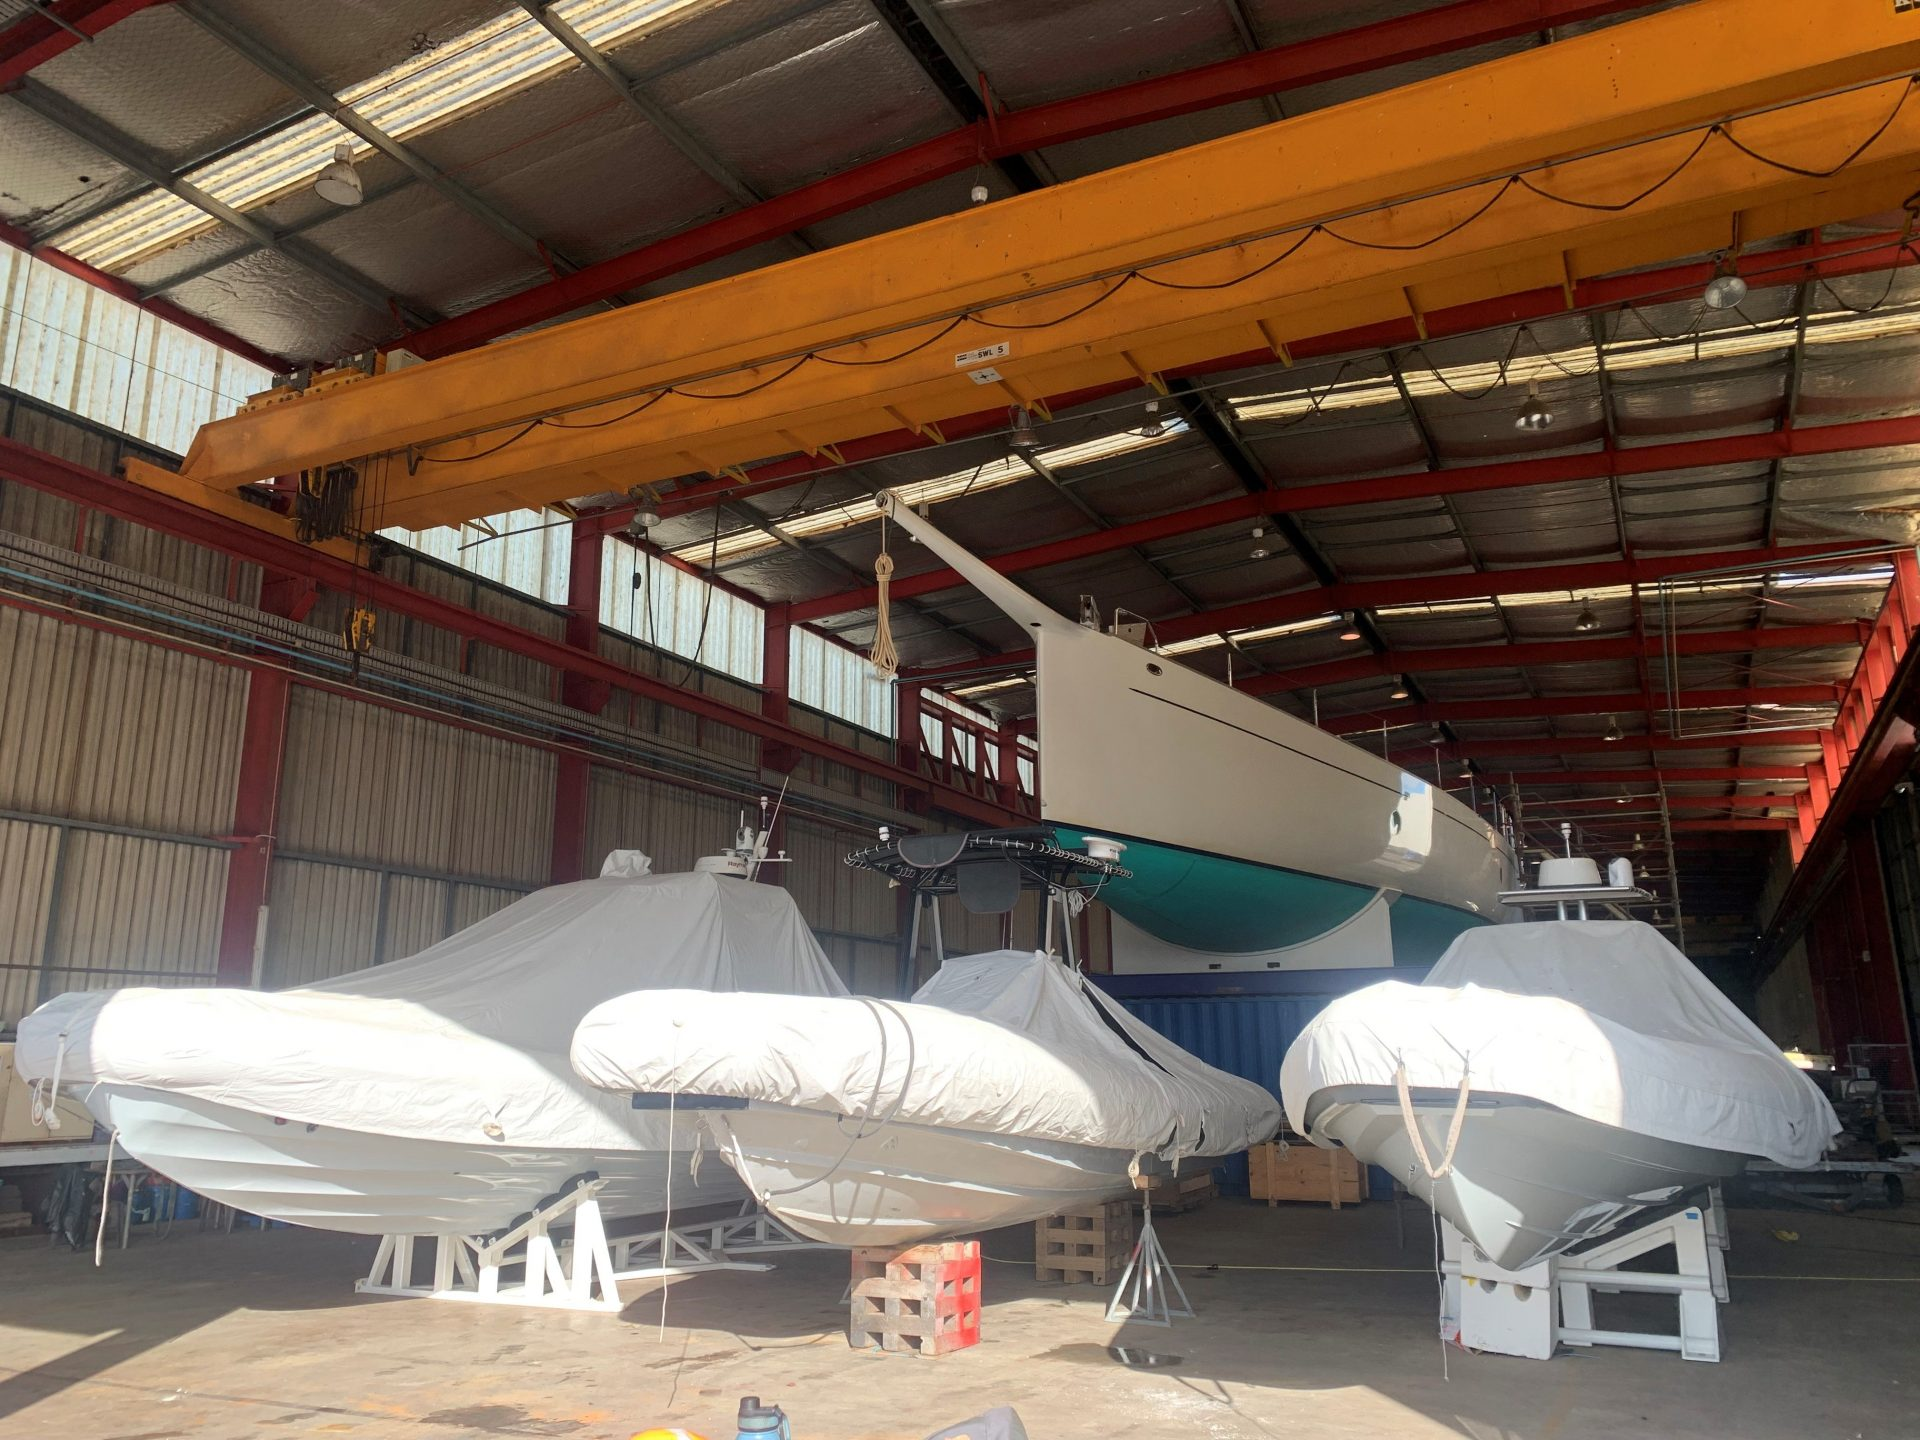 Oceania Marine Expands Its Yacht Support Services - Teaser Image